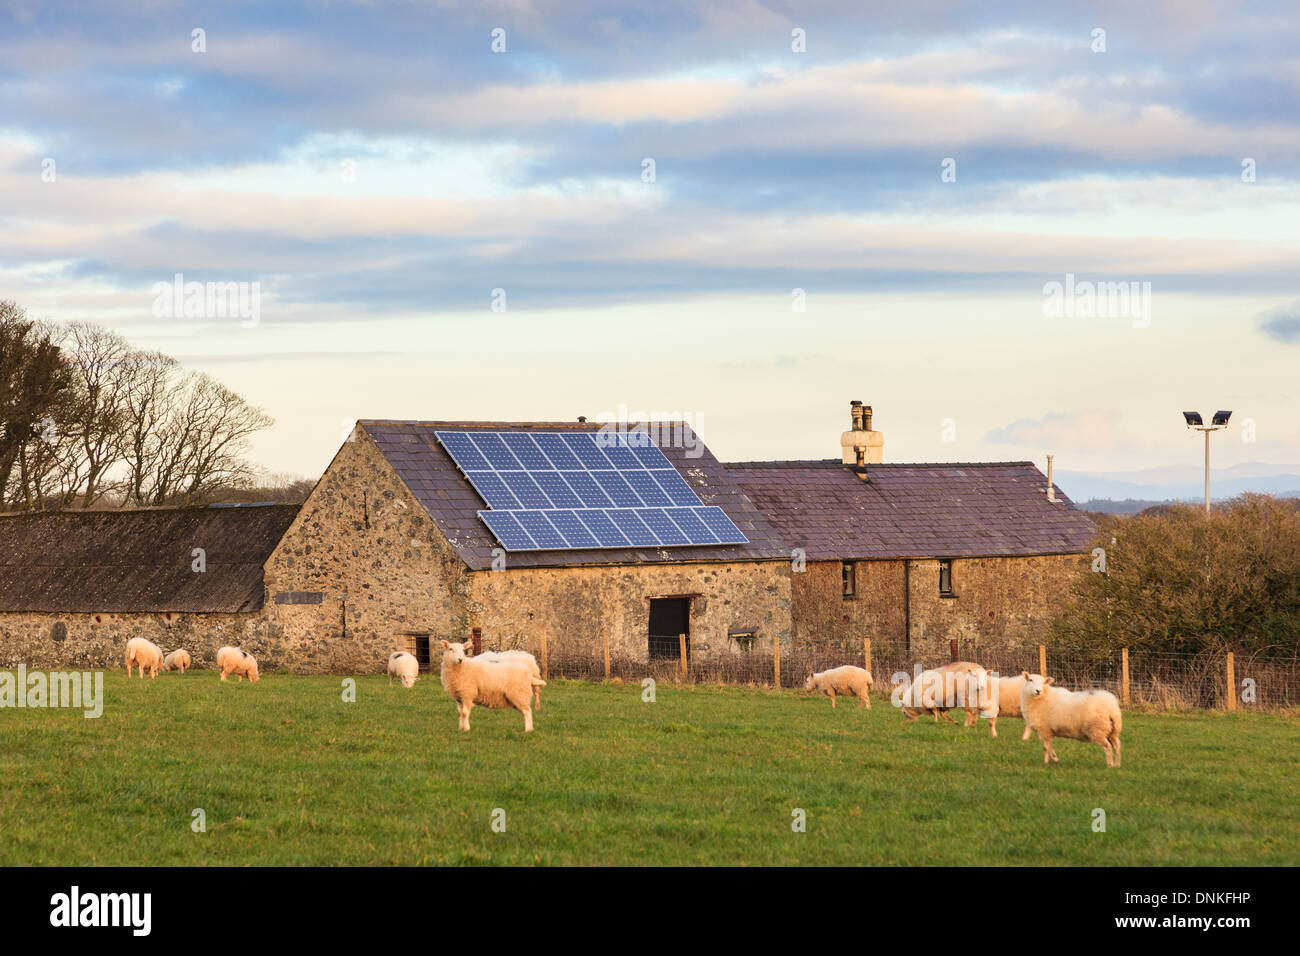 Solar panels on a roof of an old barn on a rural Welsh sheep farm in Anglesey, North Wales, UK, Britain - Stock Image